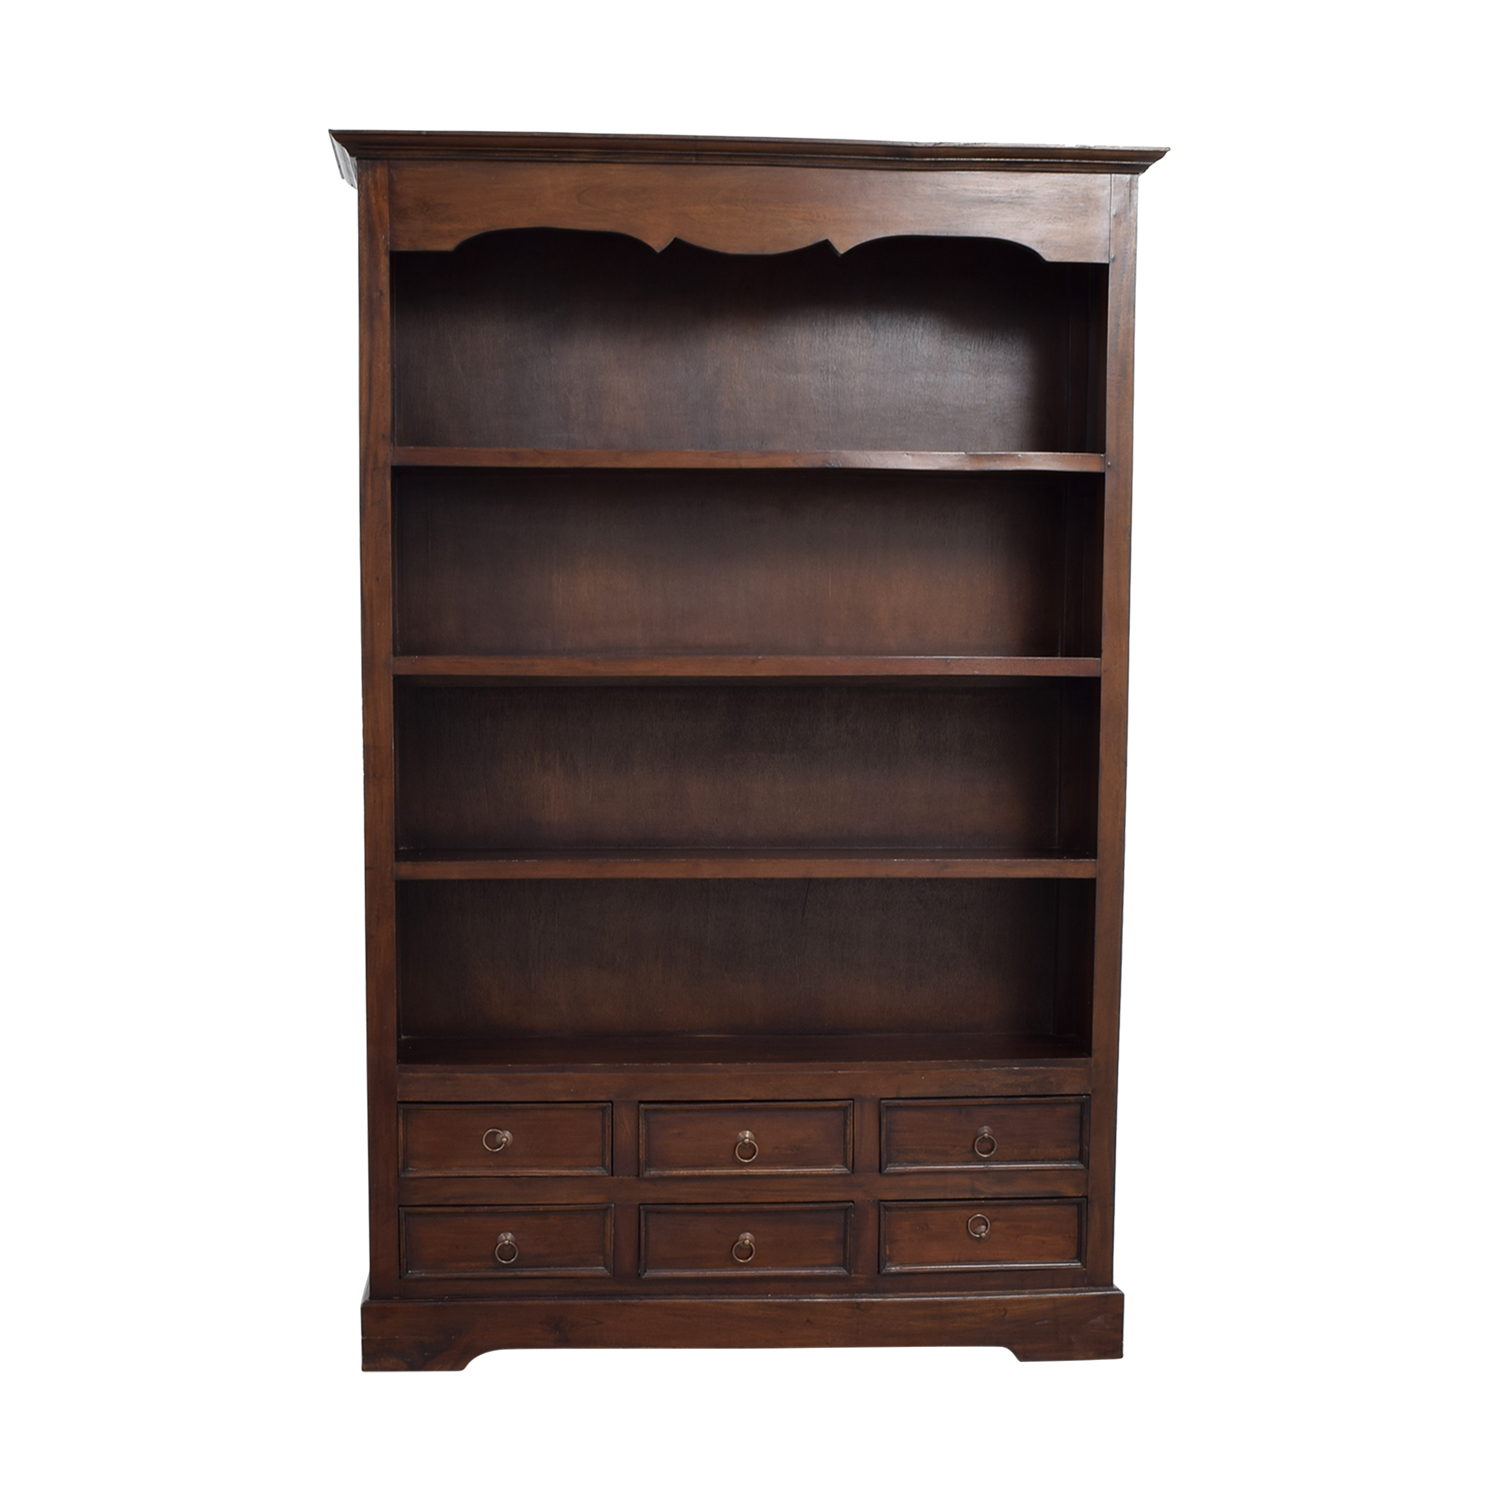 Antique Dovetailed Bookcase with Six-Drawers nj